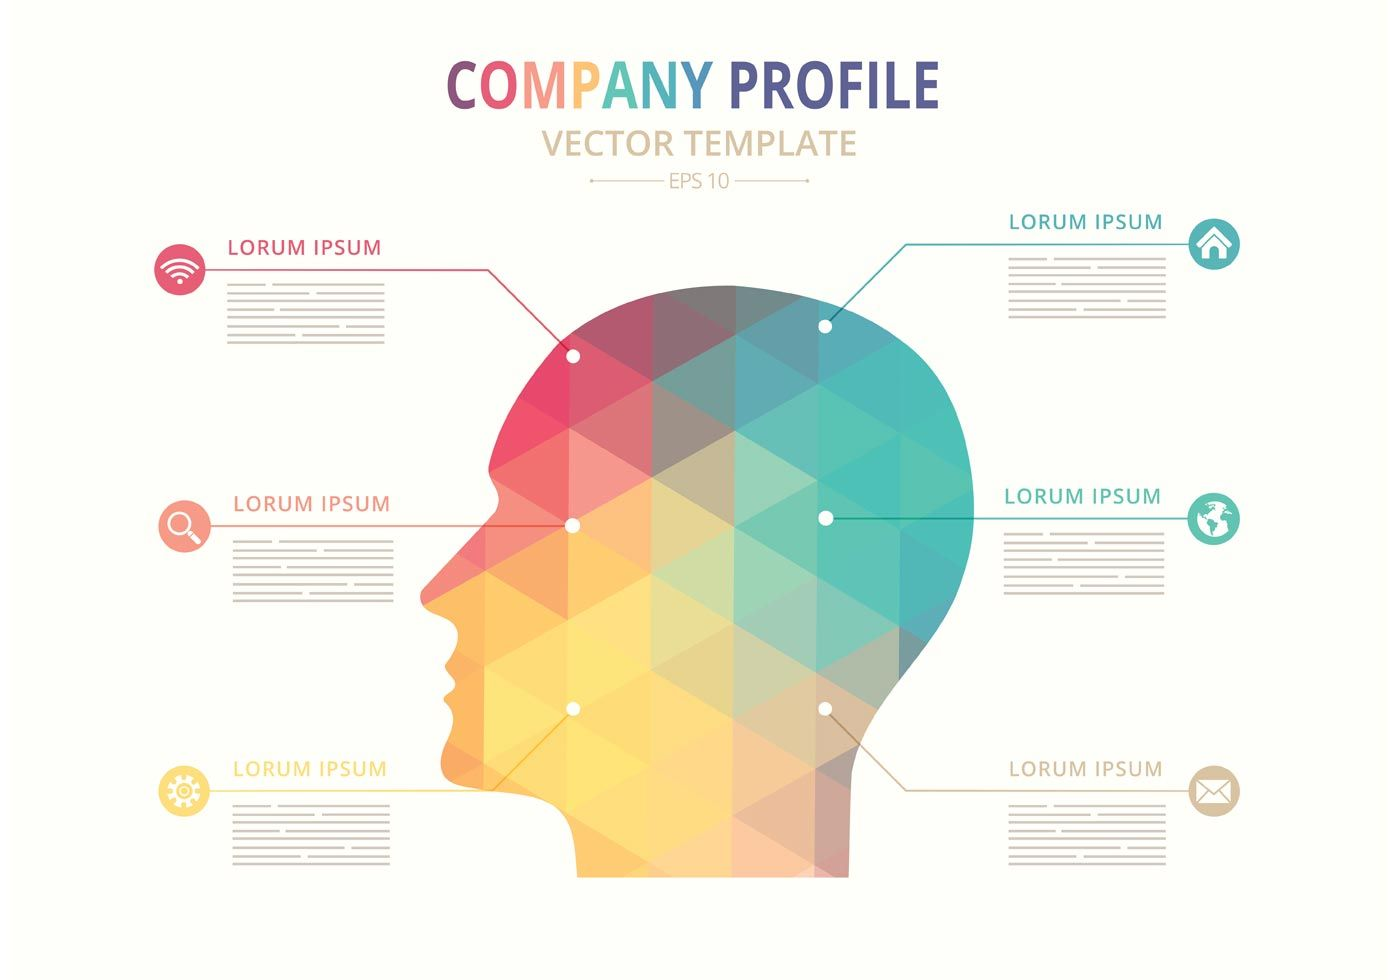 Free vector company profile template advanced design technology free vector company profile template company profile template company profile design free vector art maxwellsz